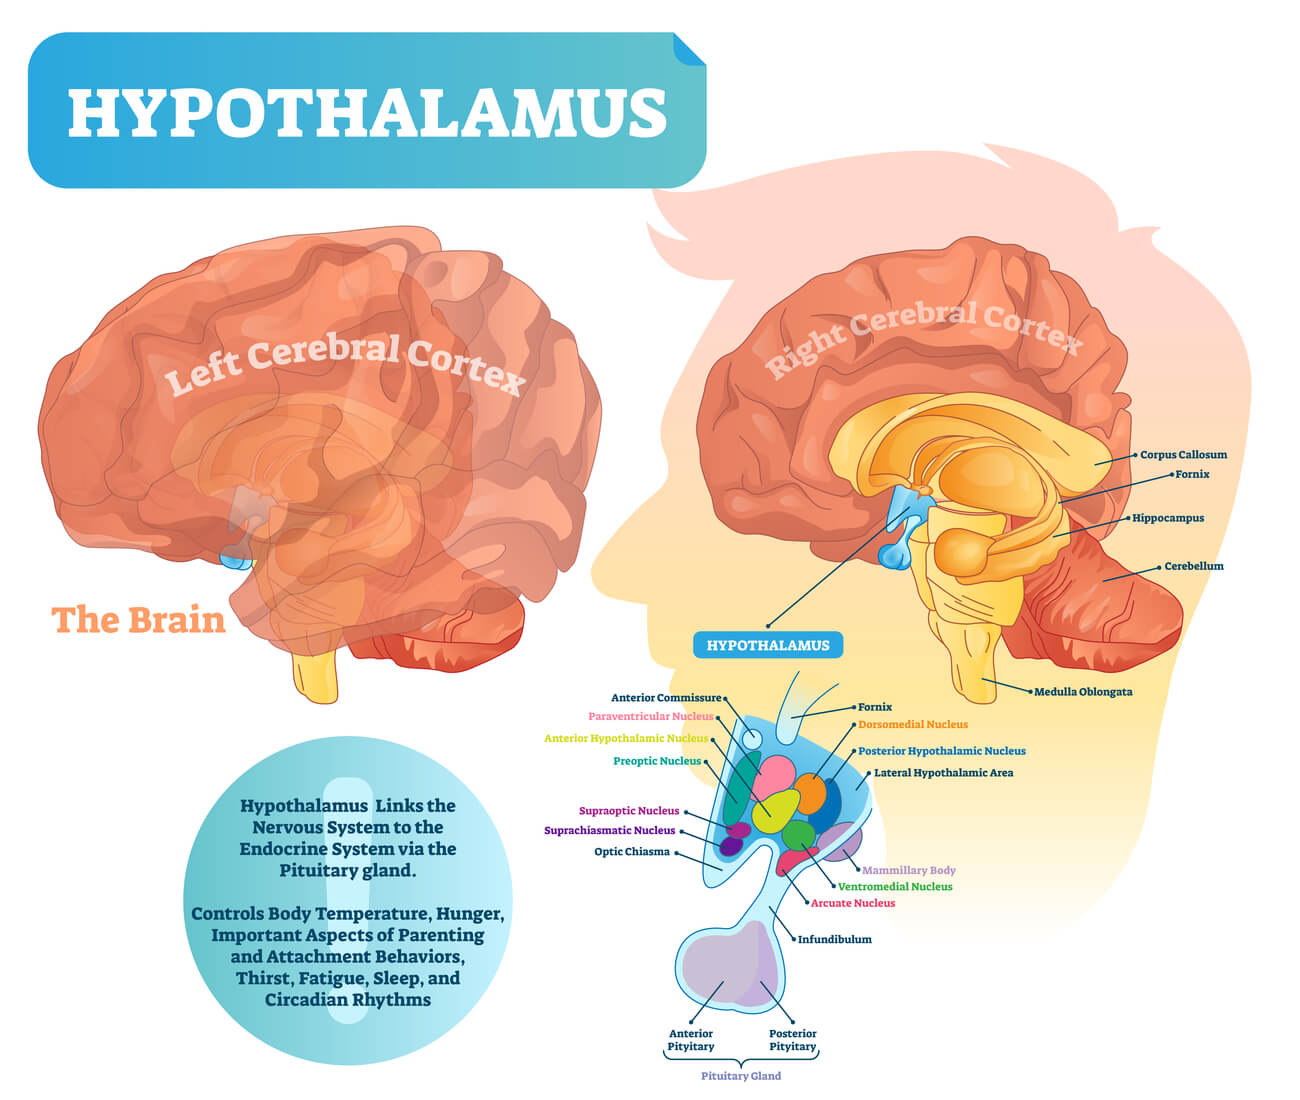 Hypothalamus localization in brain with functions listed and connection to pituitary gland illustrated